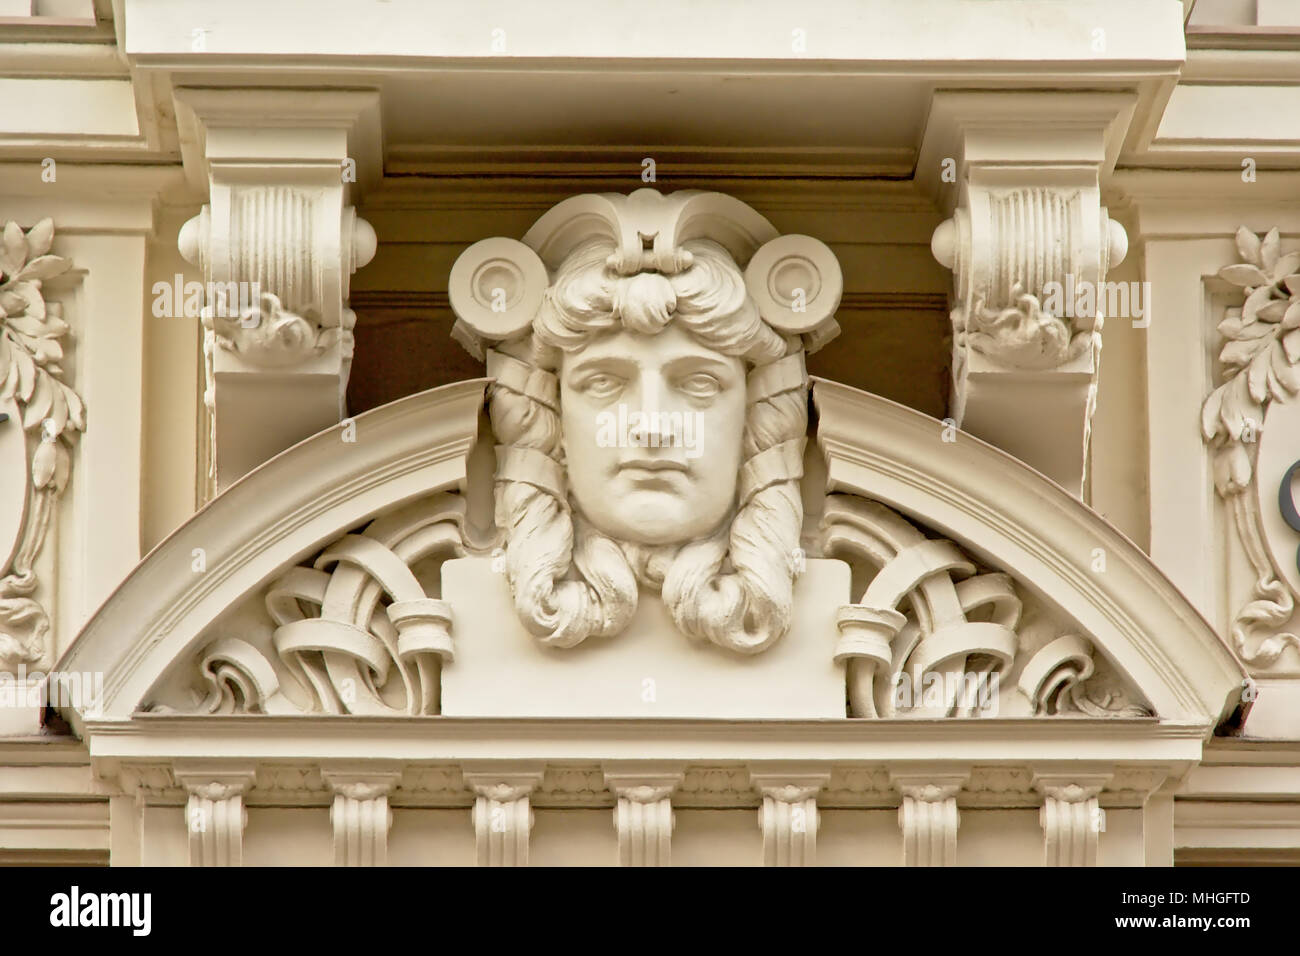 Art deco style decorations with sad man`s face - Stock Image